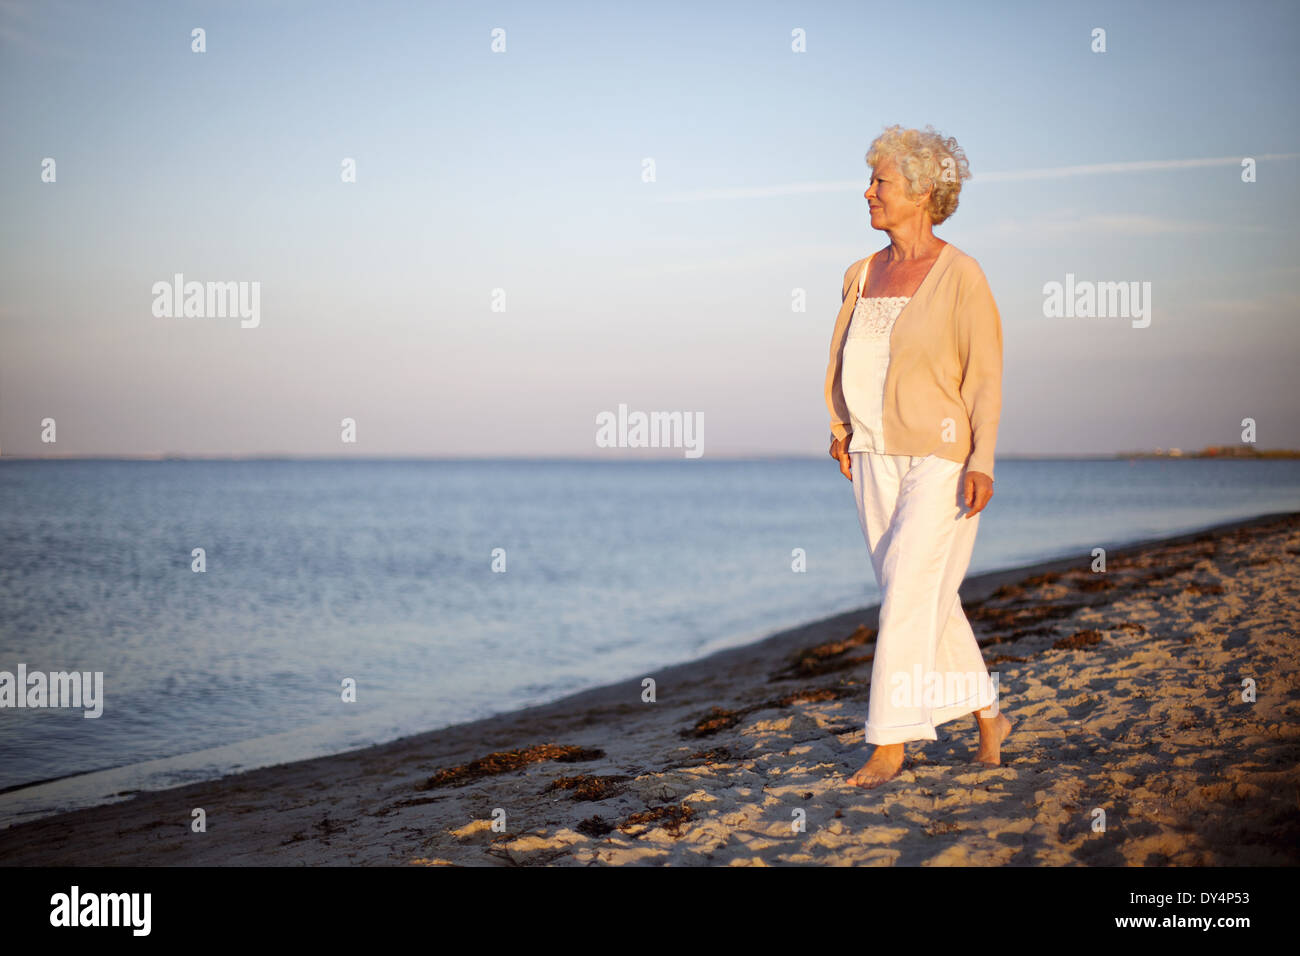 Portrait of a mature woman walking on the beach looking at the sea. Relaxed old lady strolling on the beach with copy space. - Stock Image